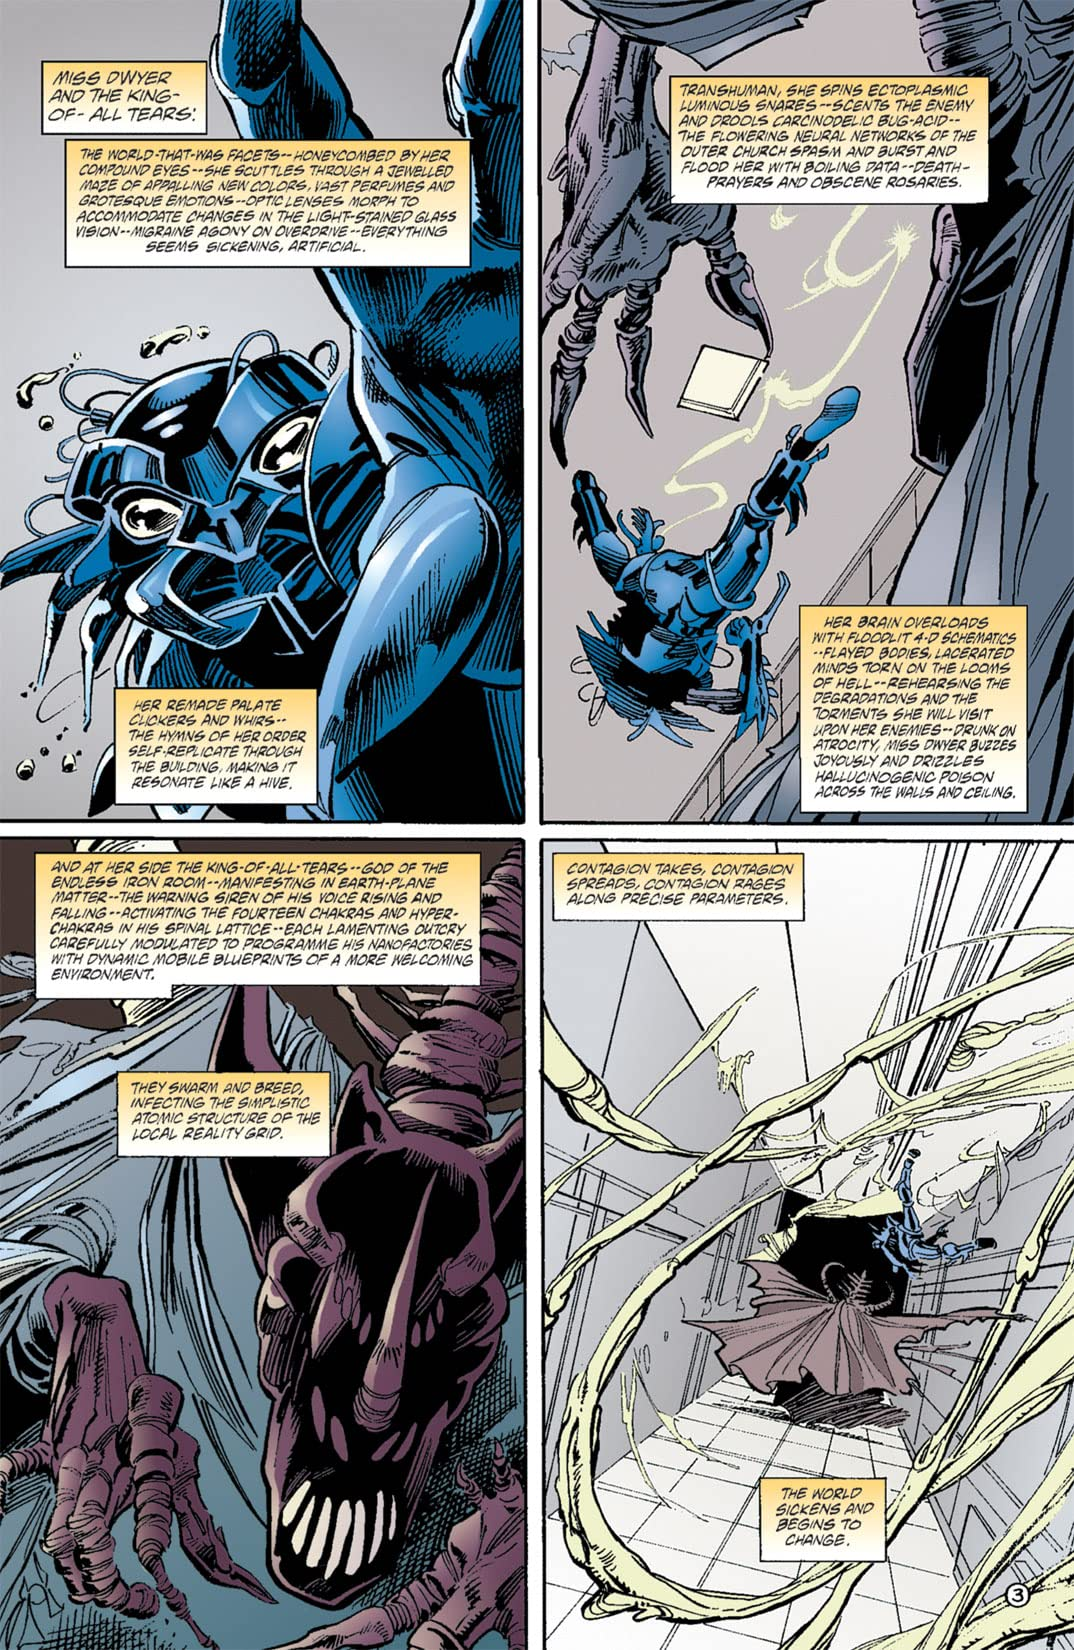 The Invisibles #22 - Comics by comiXology